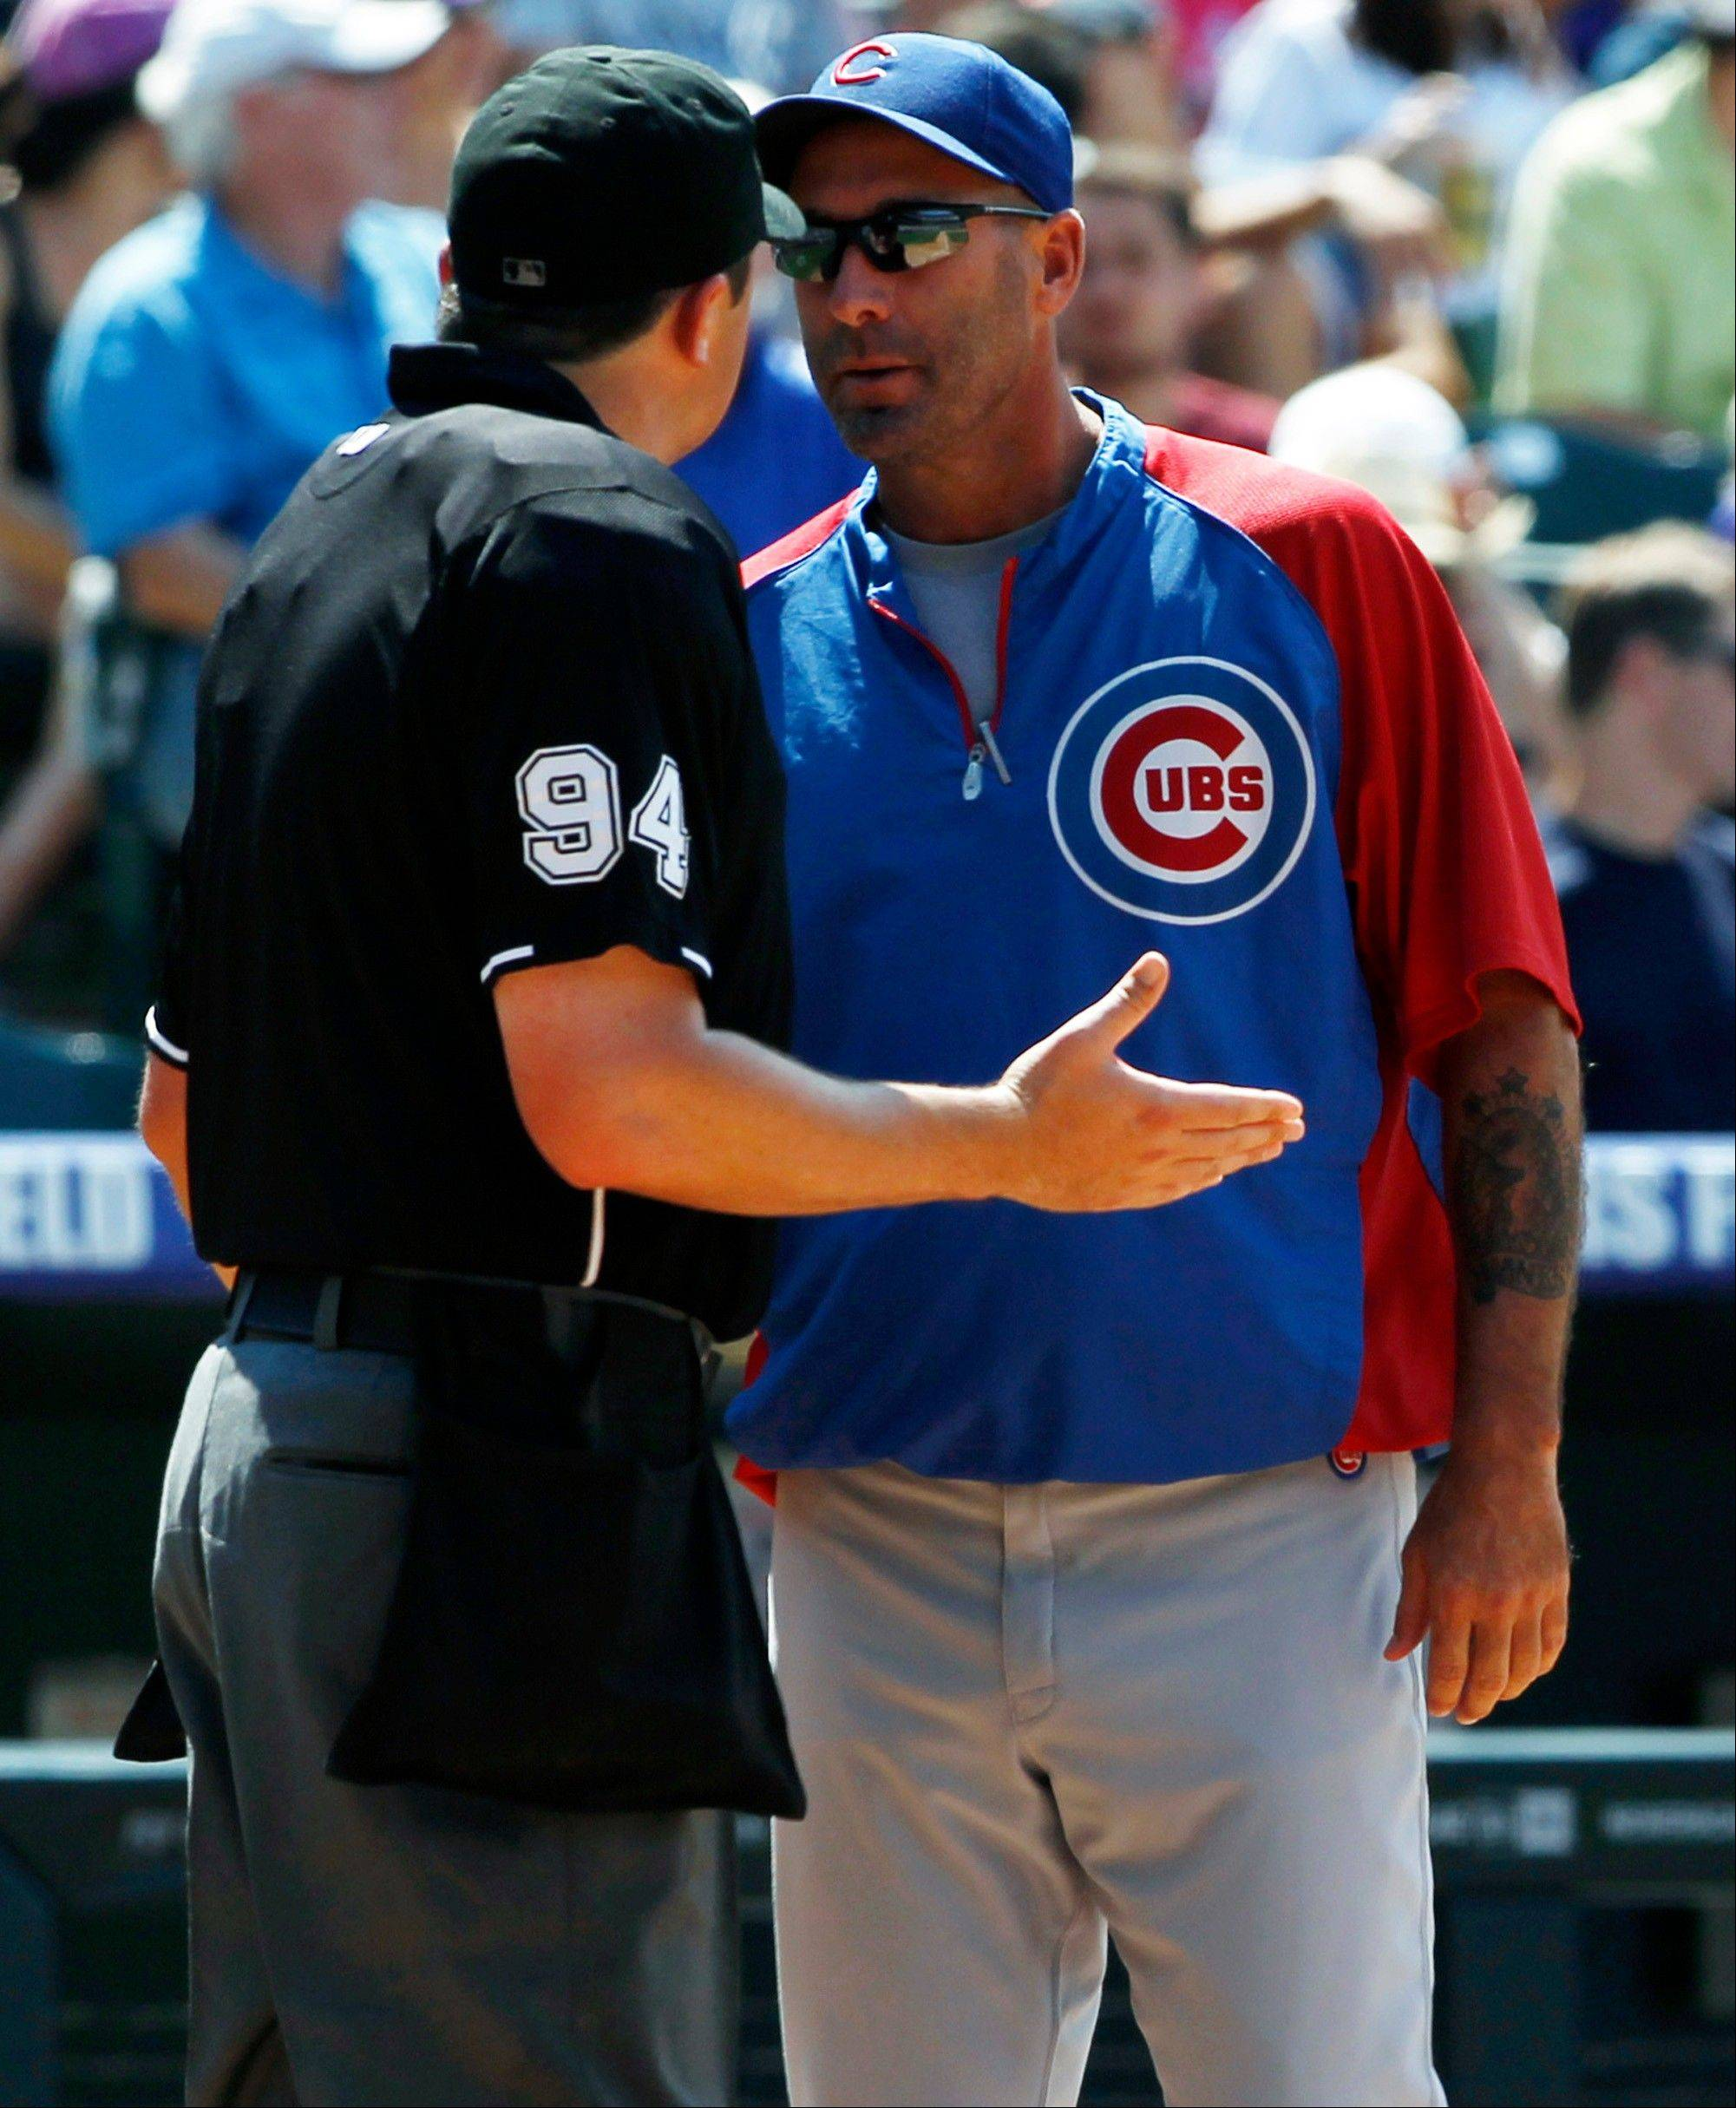 Chicago Cubs manager Dale Sveum, right, argues call with home plate umpire Lance Barrett, left, while facing the Colorado Rockies in the fourth inning of a baseball game in Denver, Sunday, July 21, 2013.